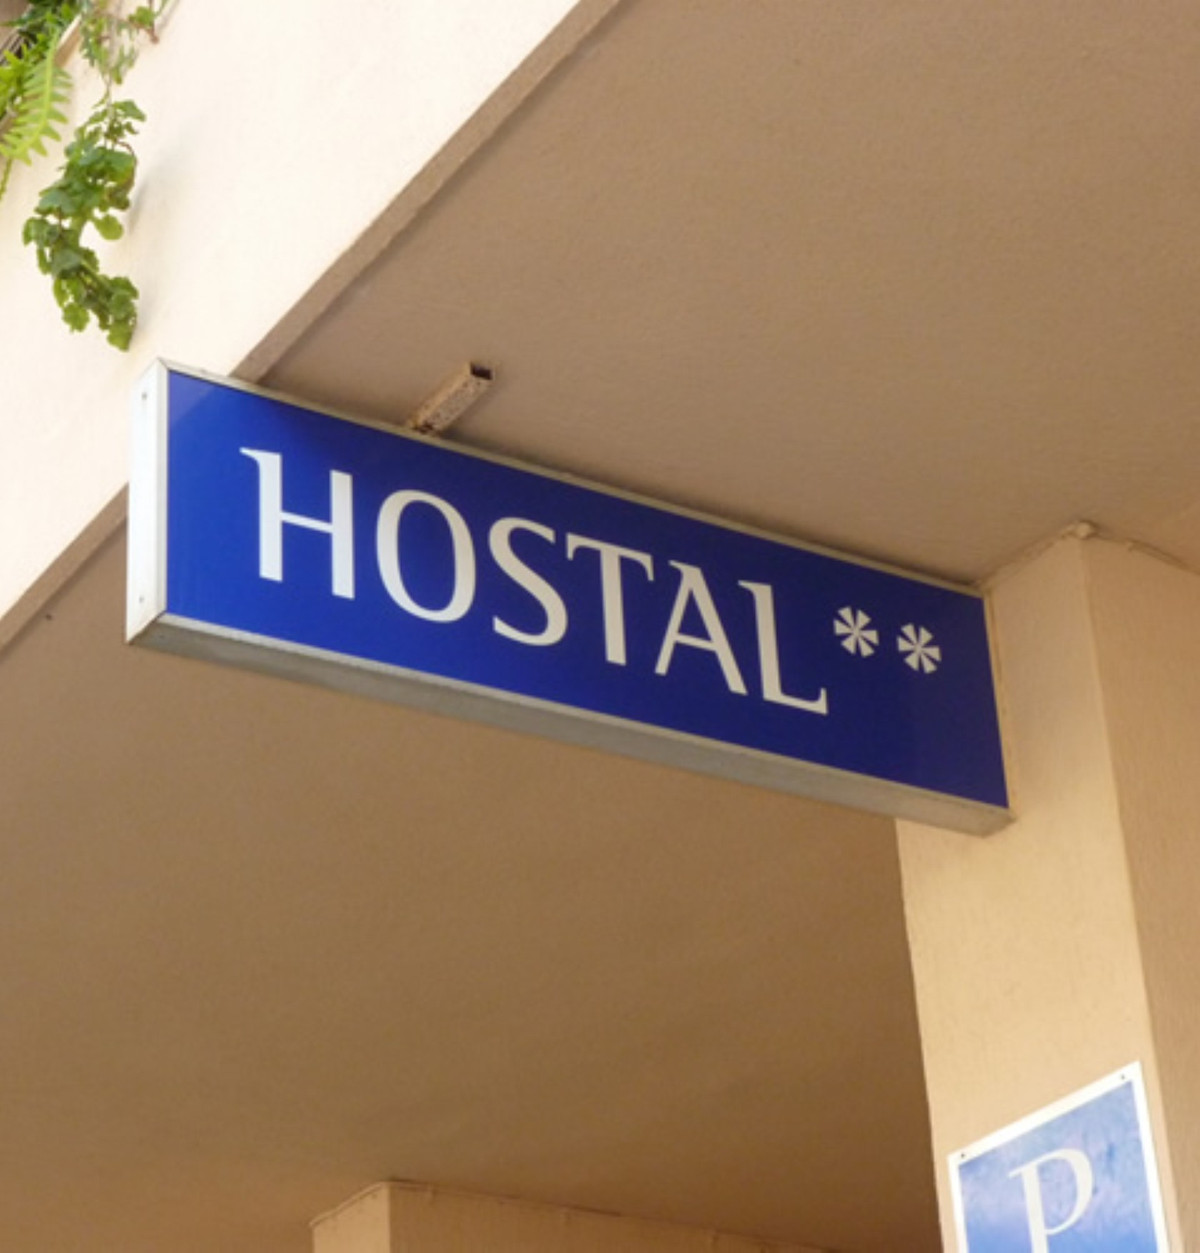 Hostal for Sale in Fuengirola.  Located in a very central position, close to the beach, town centre , Spain